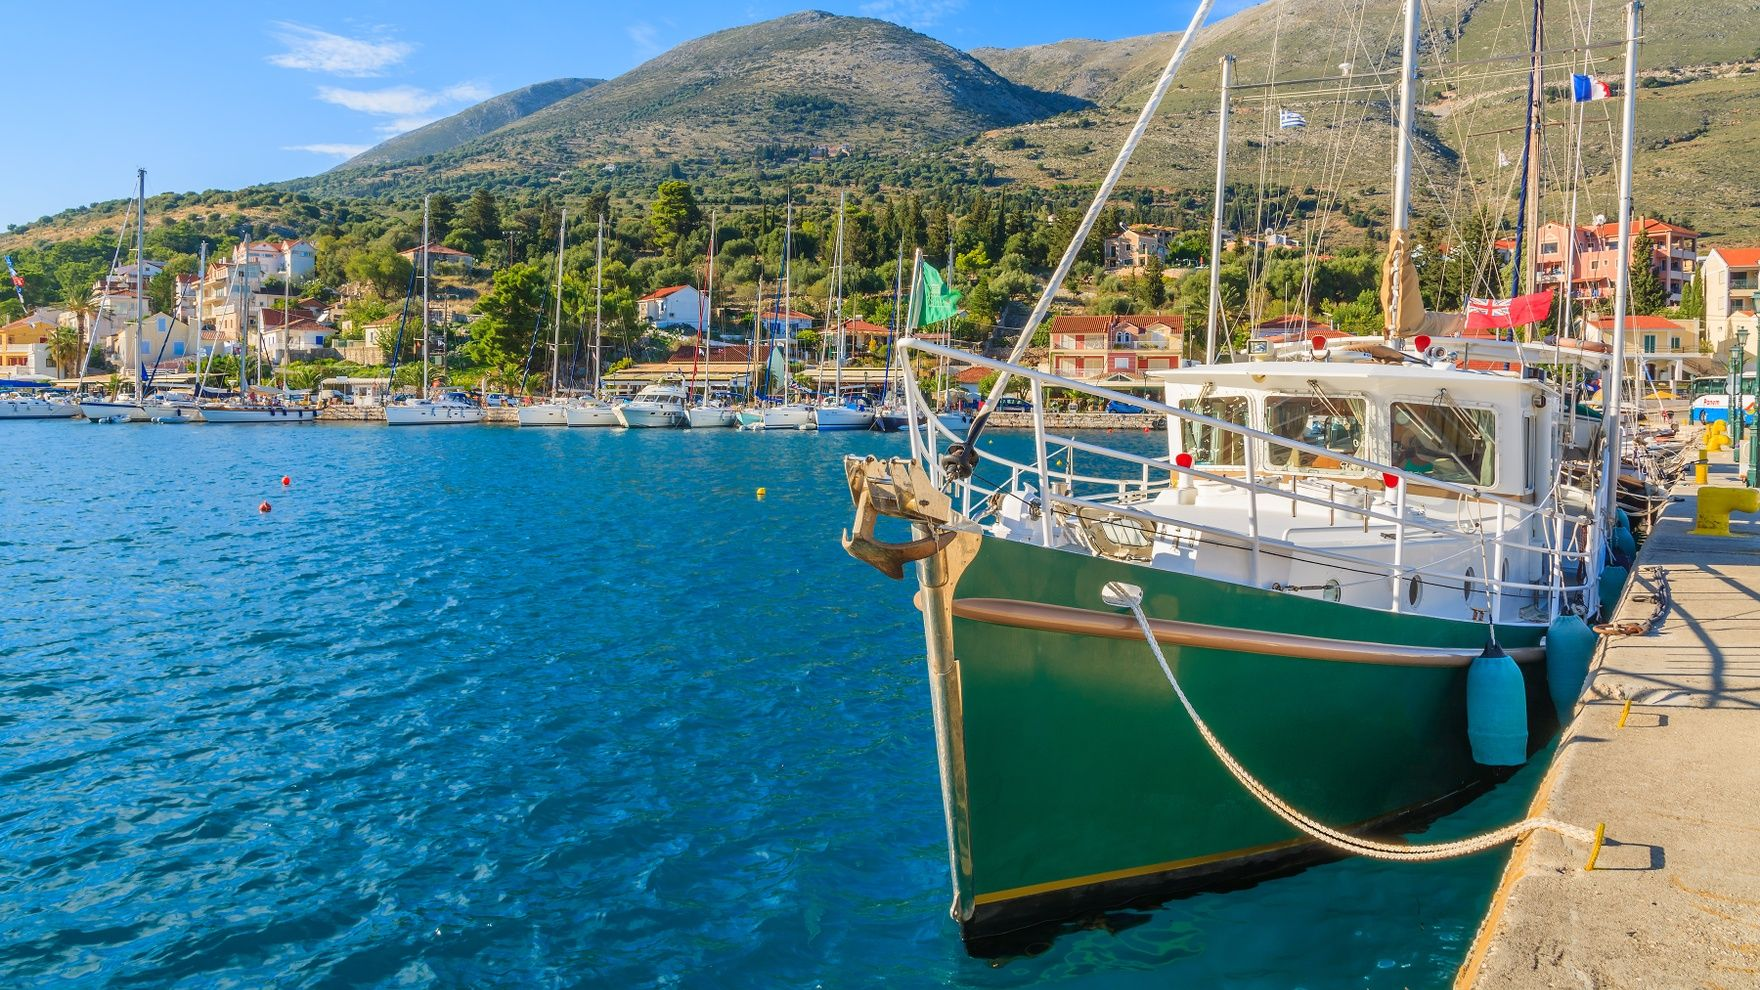 The treasures of the Ionian Sea